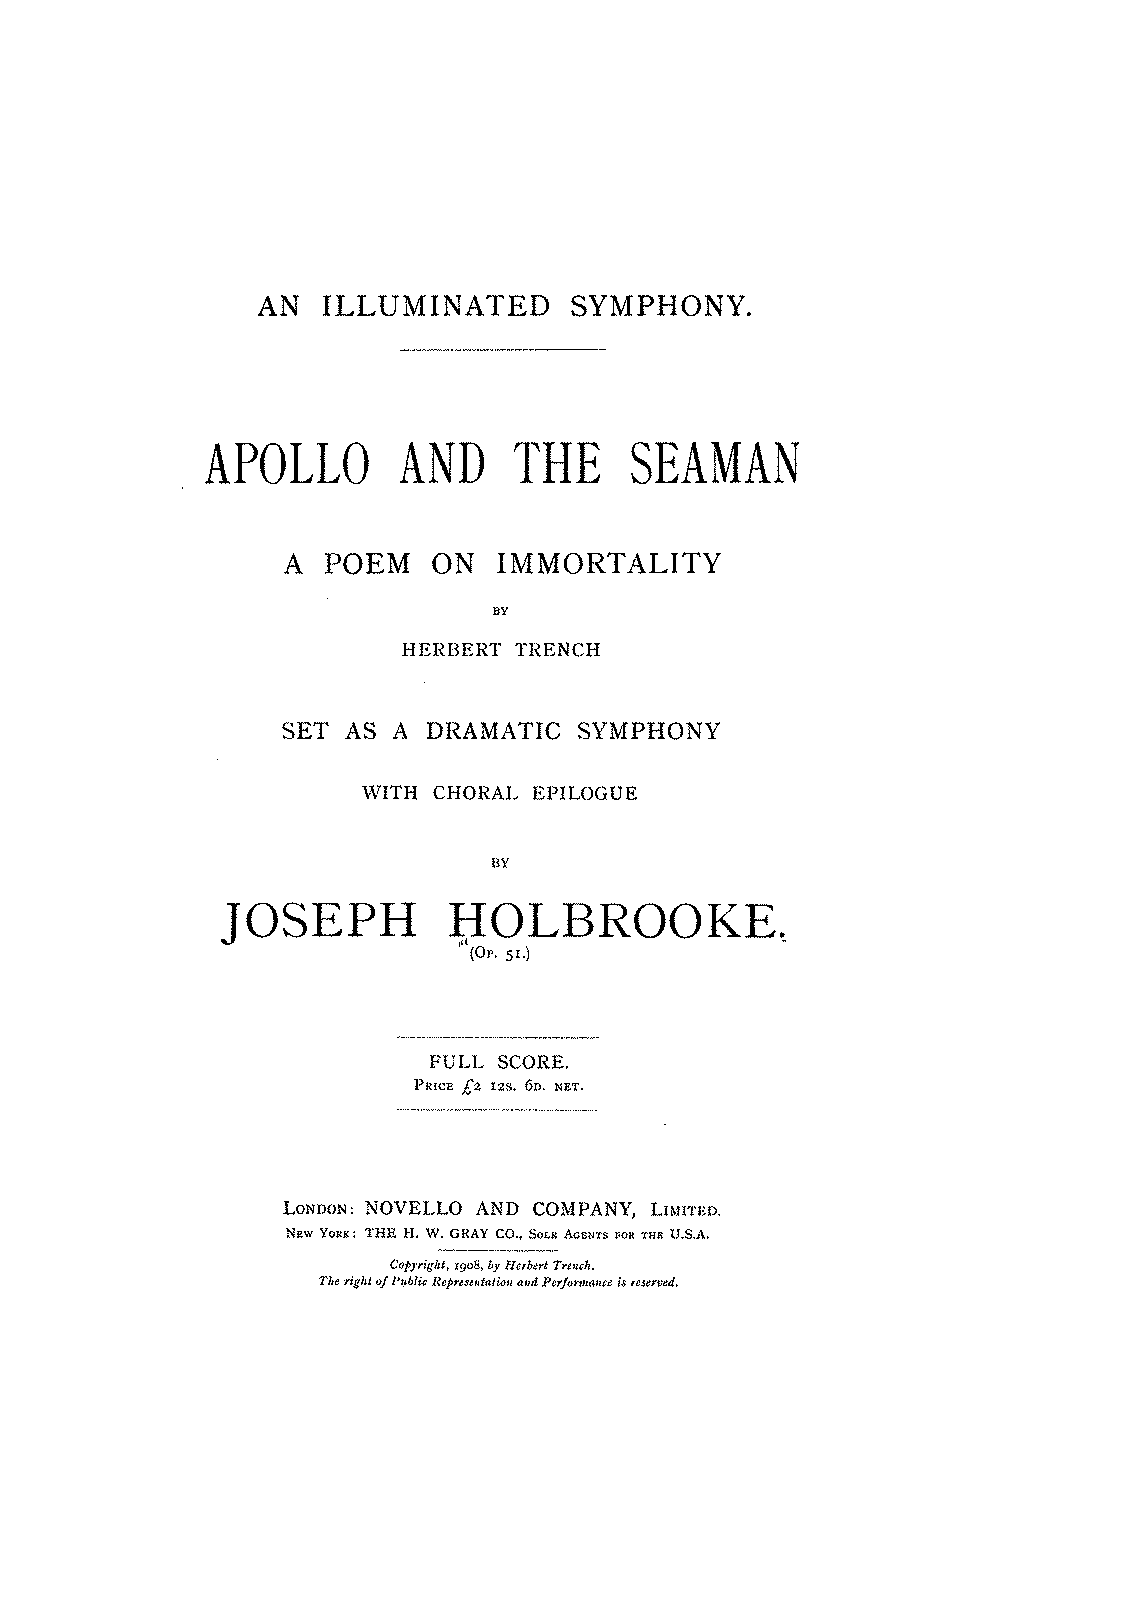 PMLP61062-Holbrooke - Symphony No 2 'Apollo and the Seaman' - 0 - Cover, Directions, Contents, Poem, Themes.pdf